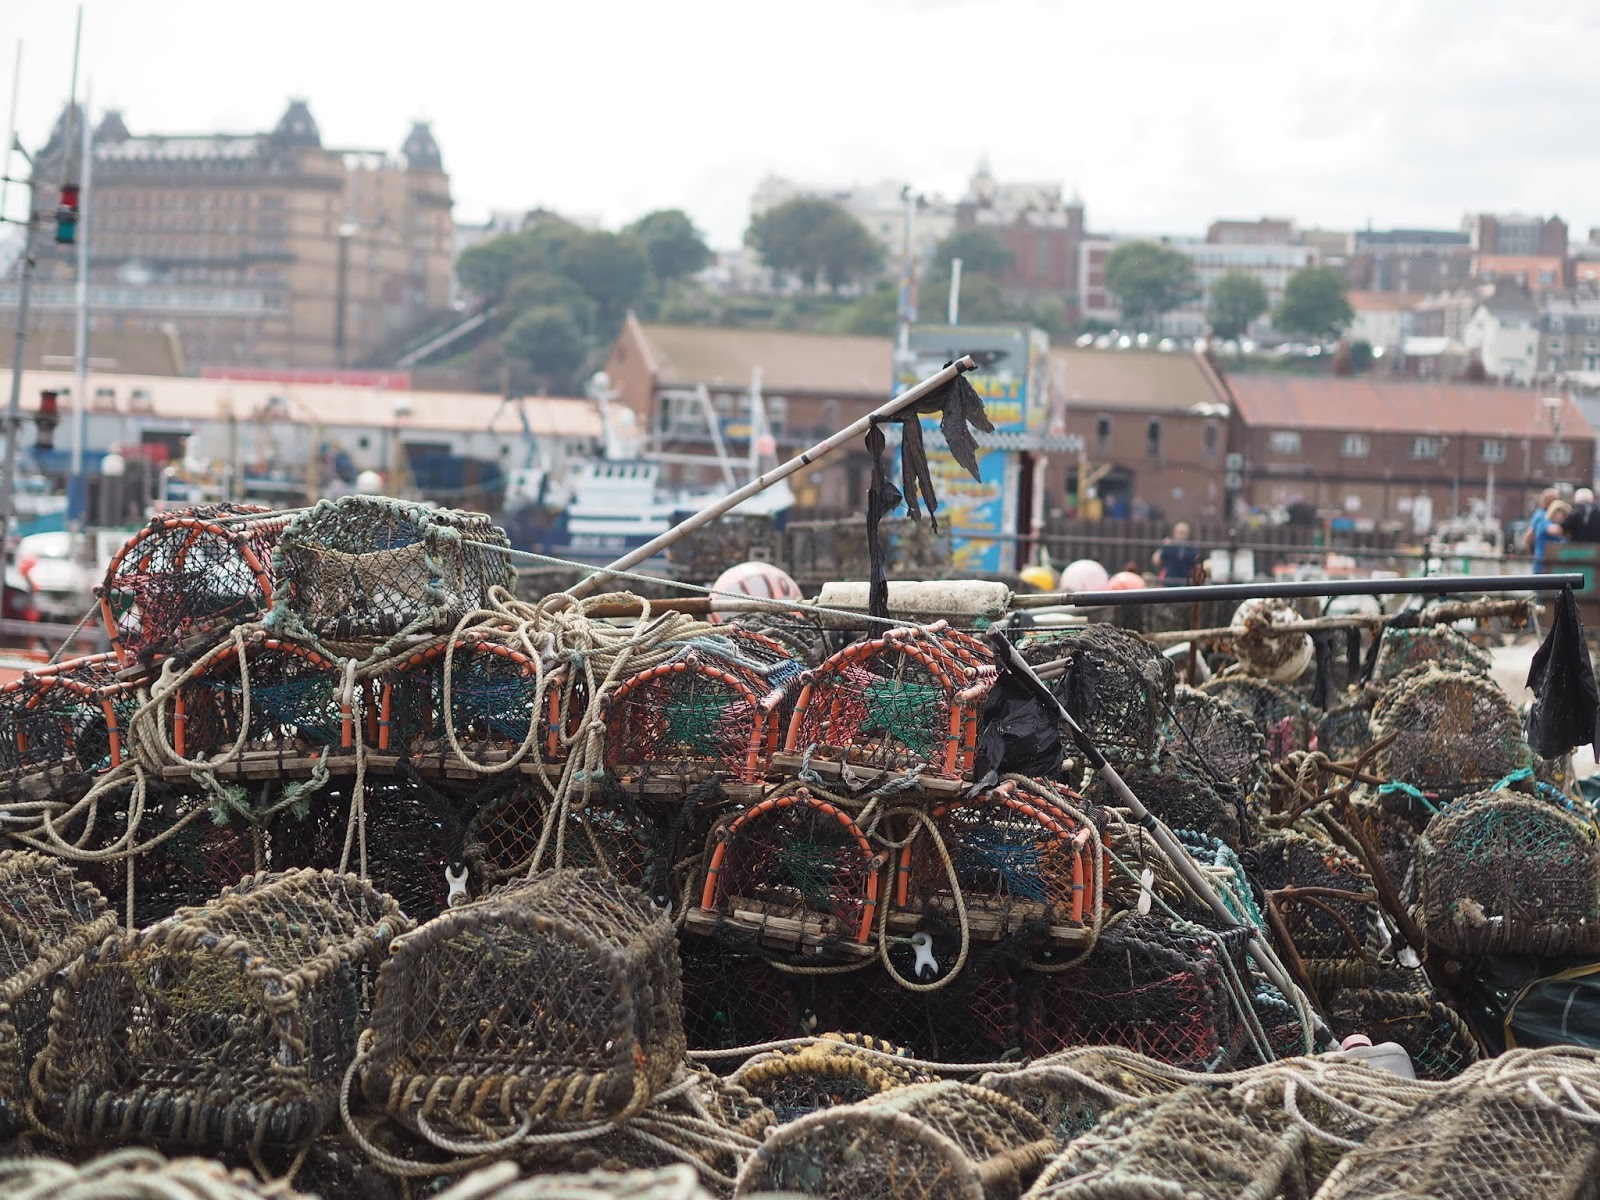 Lobster cages baskets fishing South Bay, Scarborough